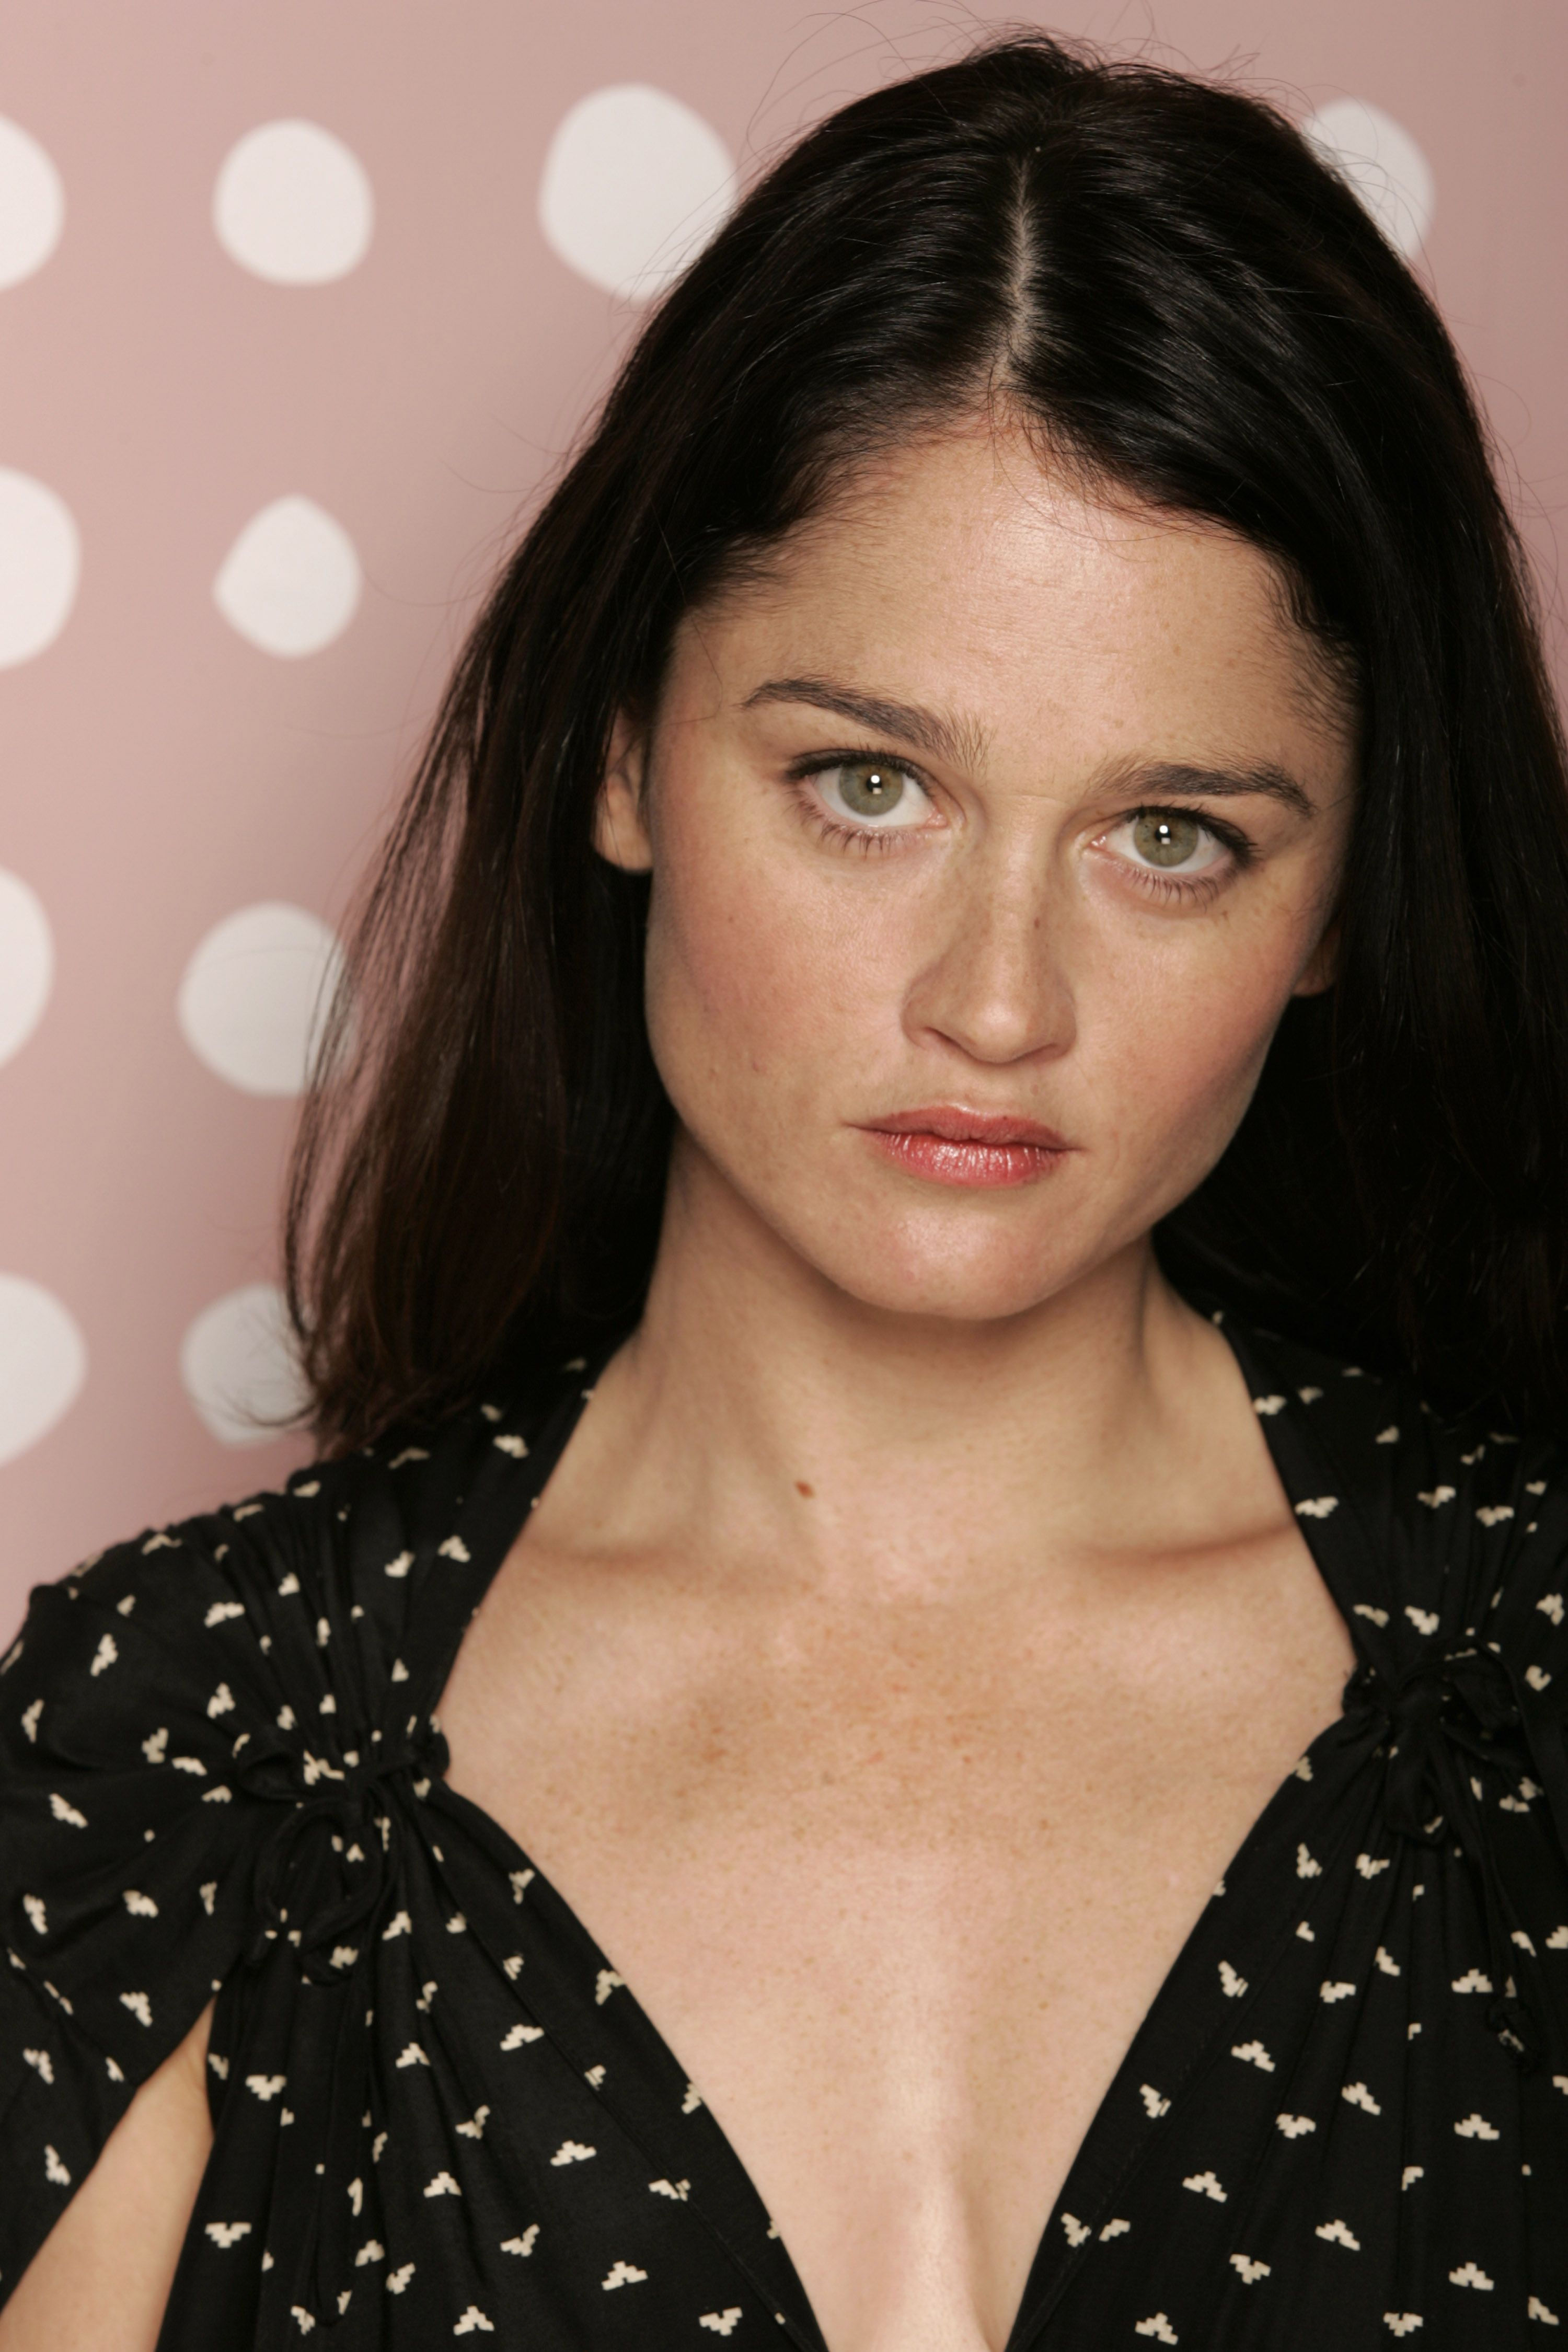 robin tunney fansiterobin tunney twitter, robin tunney interview, robin tunney fansite, robin tunney bellazon, robin tunney the craft, robin tunney nicky marmet, robin tunney twitter official, robin tunney facebook, robin tunney wikipedia, robin tunney blog, robin tunney instagram, robin tunney wiki, robin tunney 2016, robin tunney mentalist, robin tunney фильмография, robin tunney simon baker, robin tunney son, robin tunney and kristen stewart, robin tunney earnings, robin tunney schwester